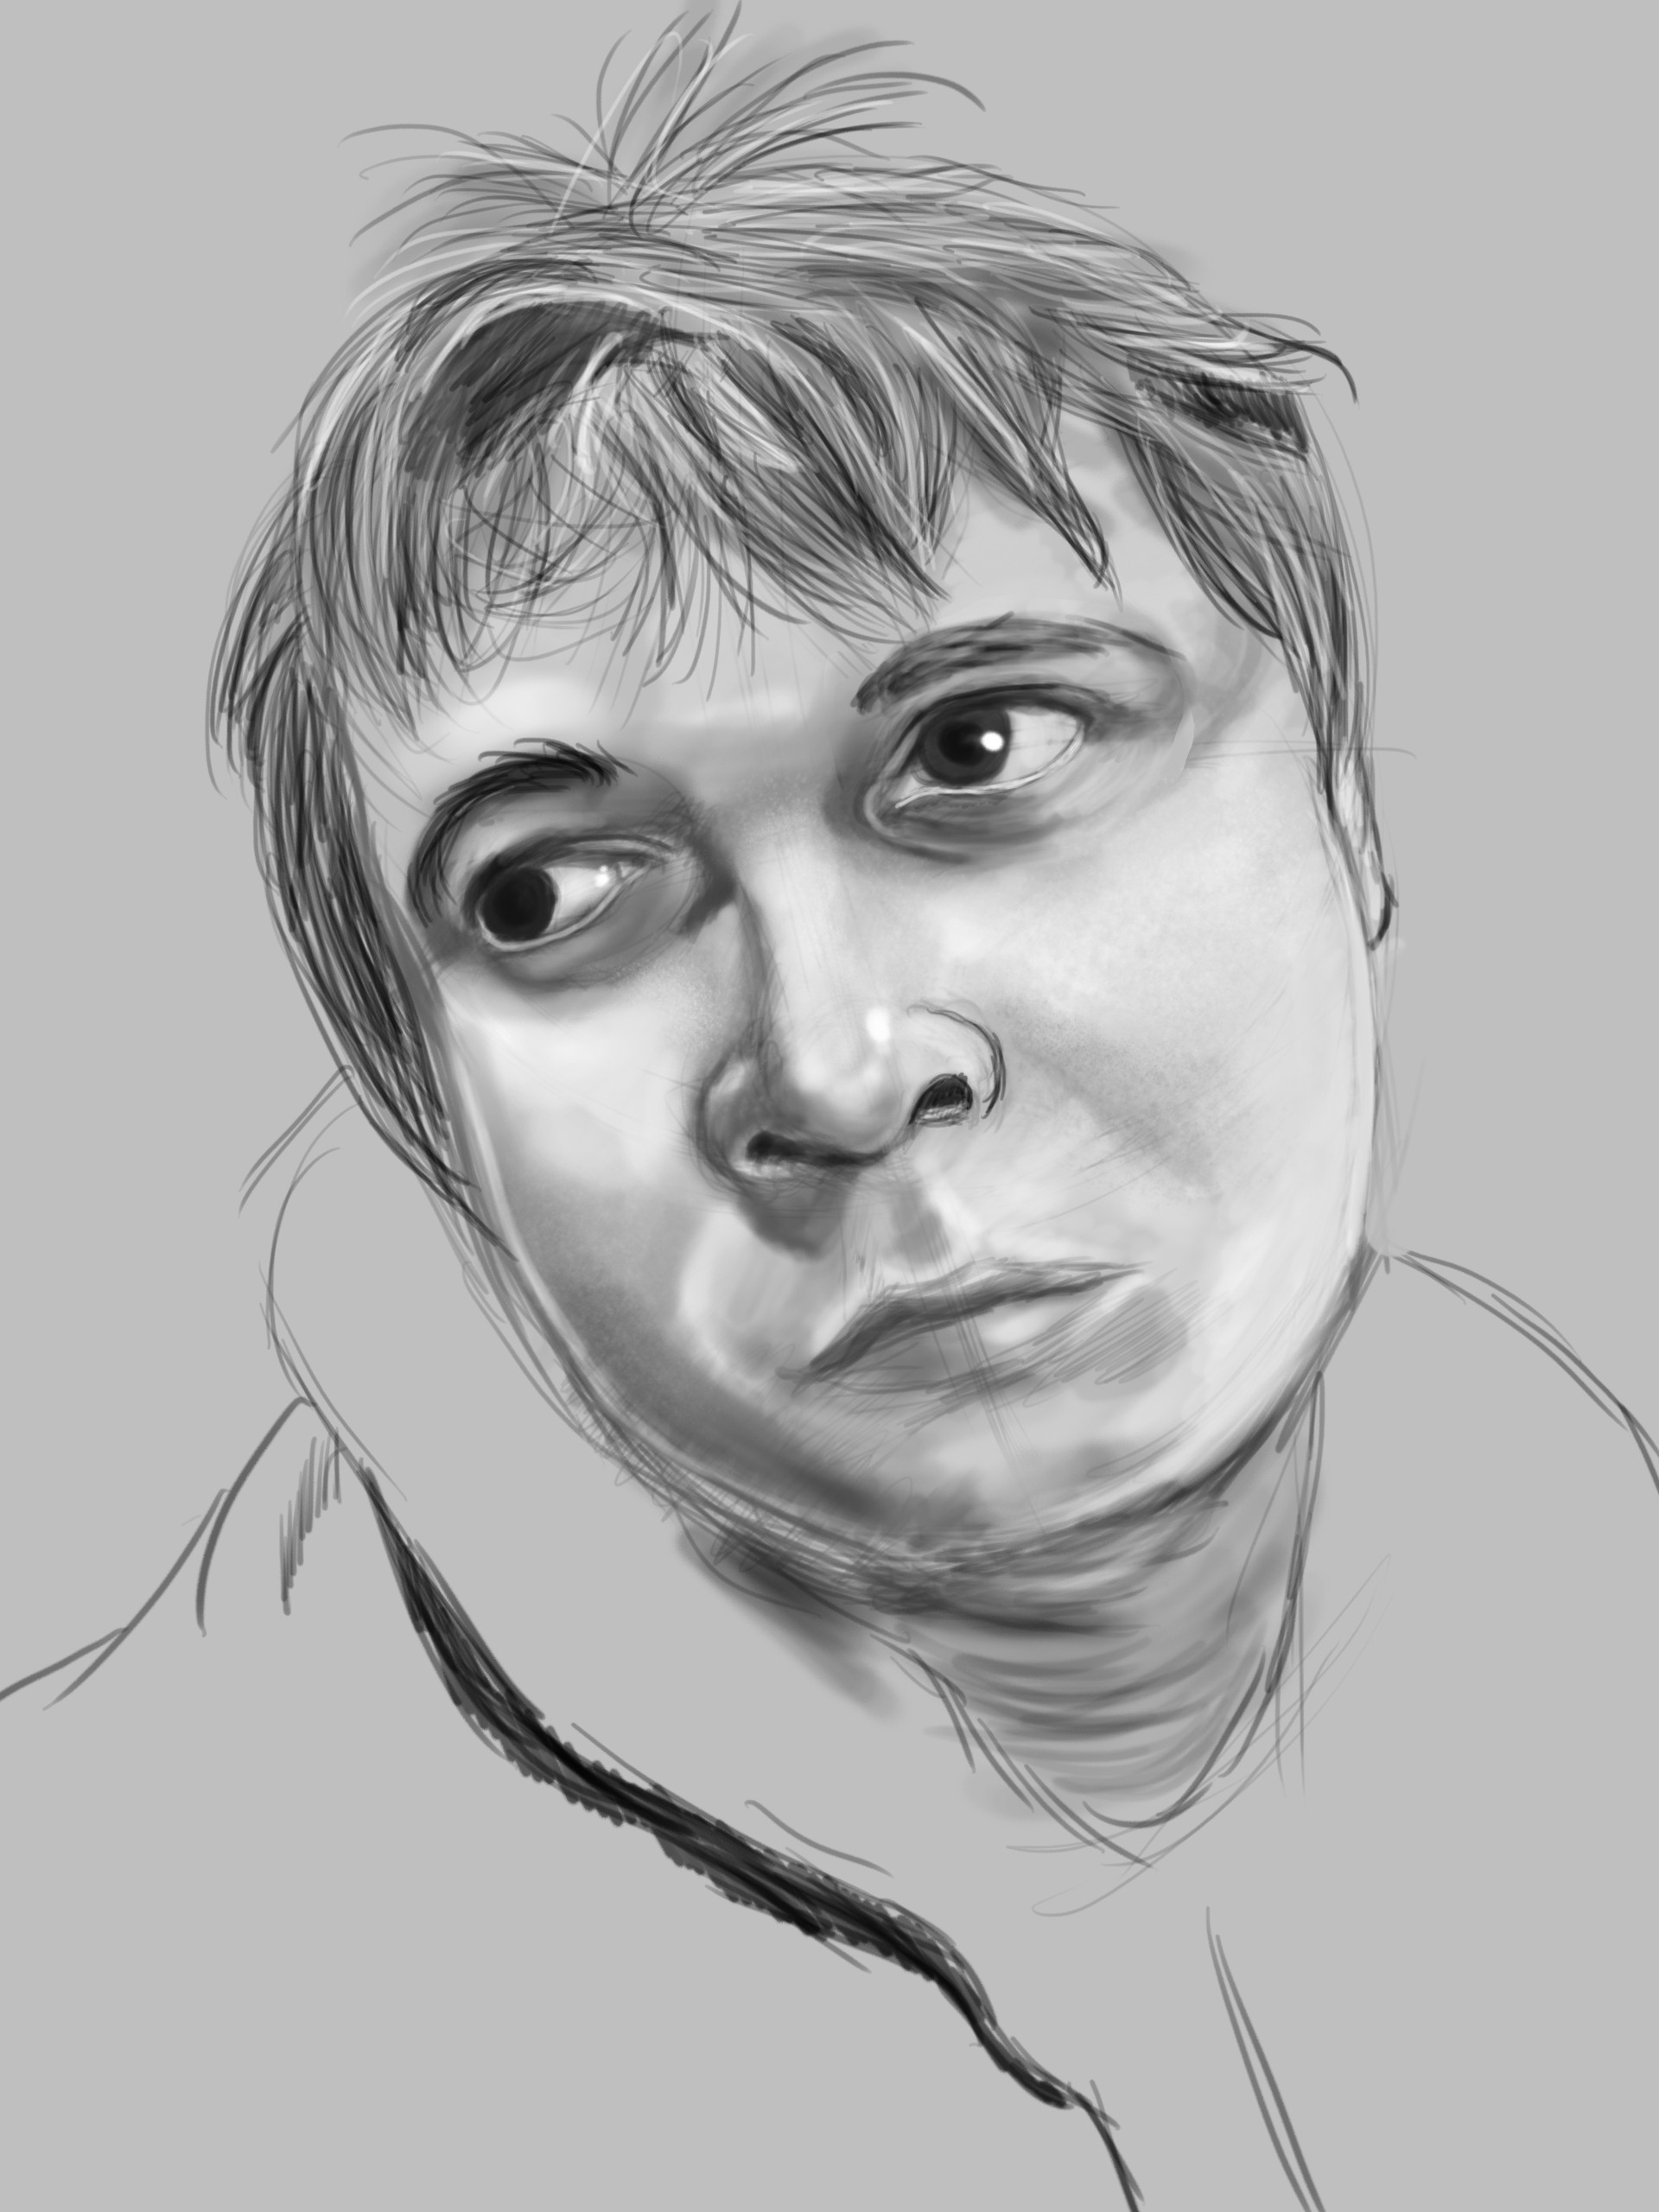 Self portrait done in Photoshop